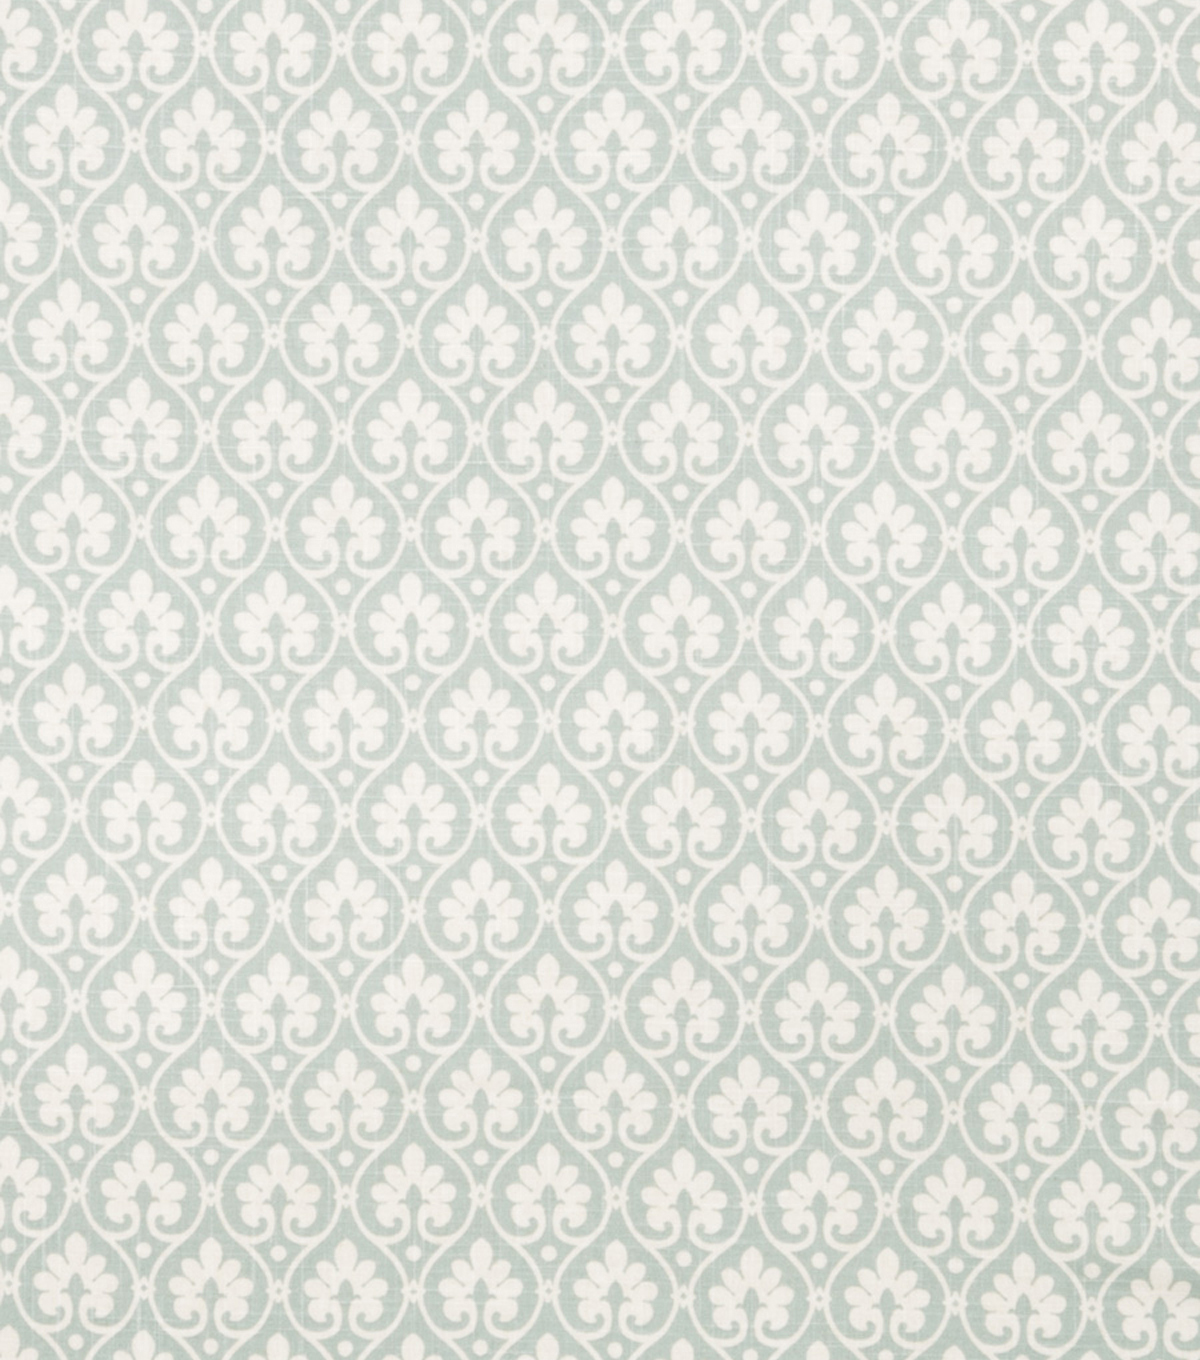 Home Decor 8\u0022x8\u0022 Fabric Swatch-SMC Designs Eugene / Fresco